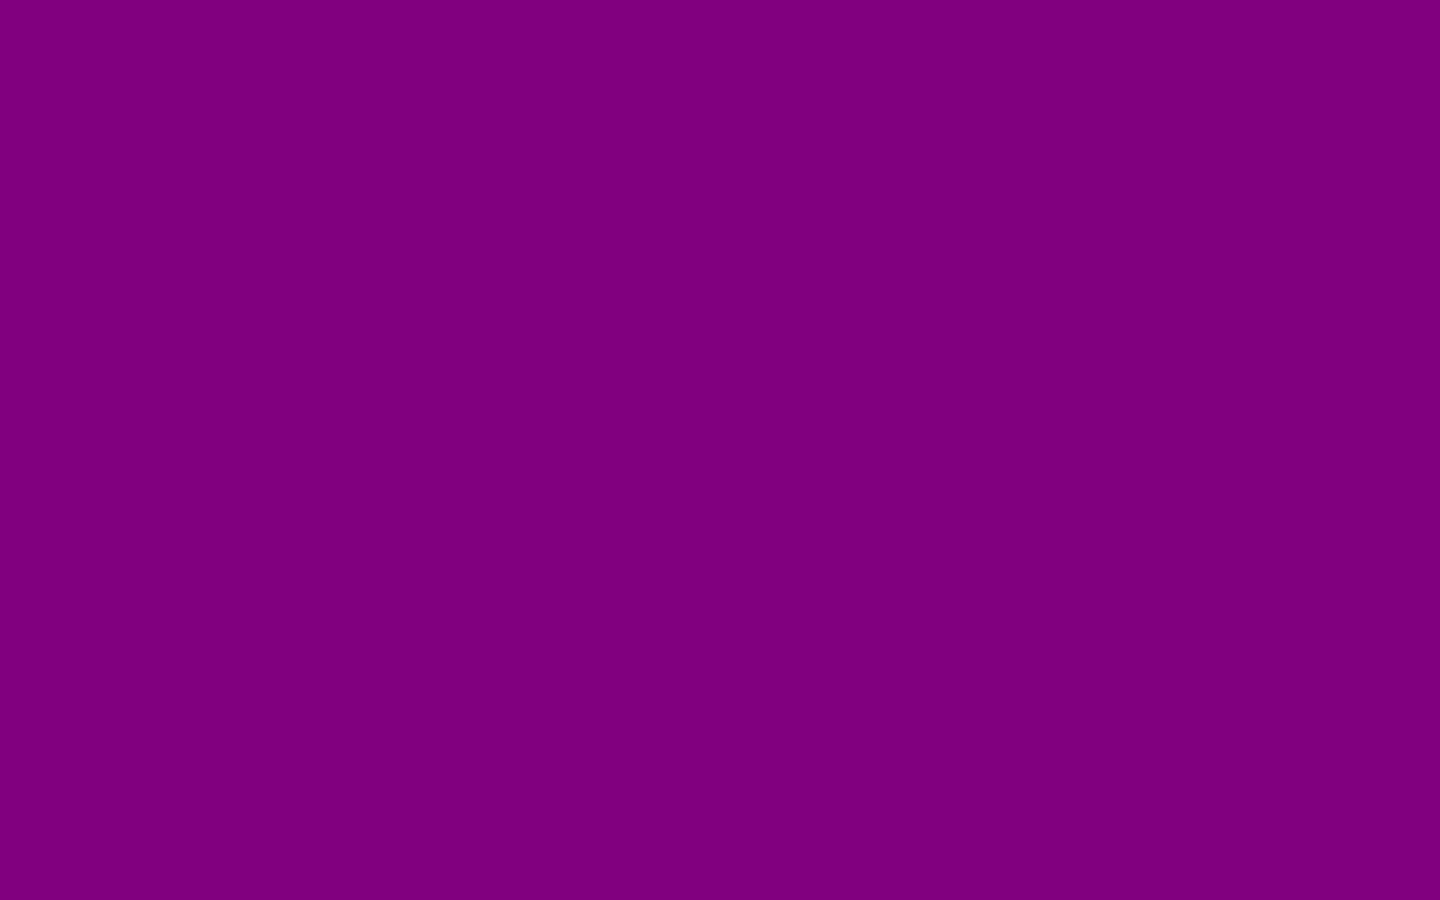 Purple color wallpaper wallpapersafari - What colors go with purple ...